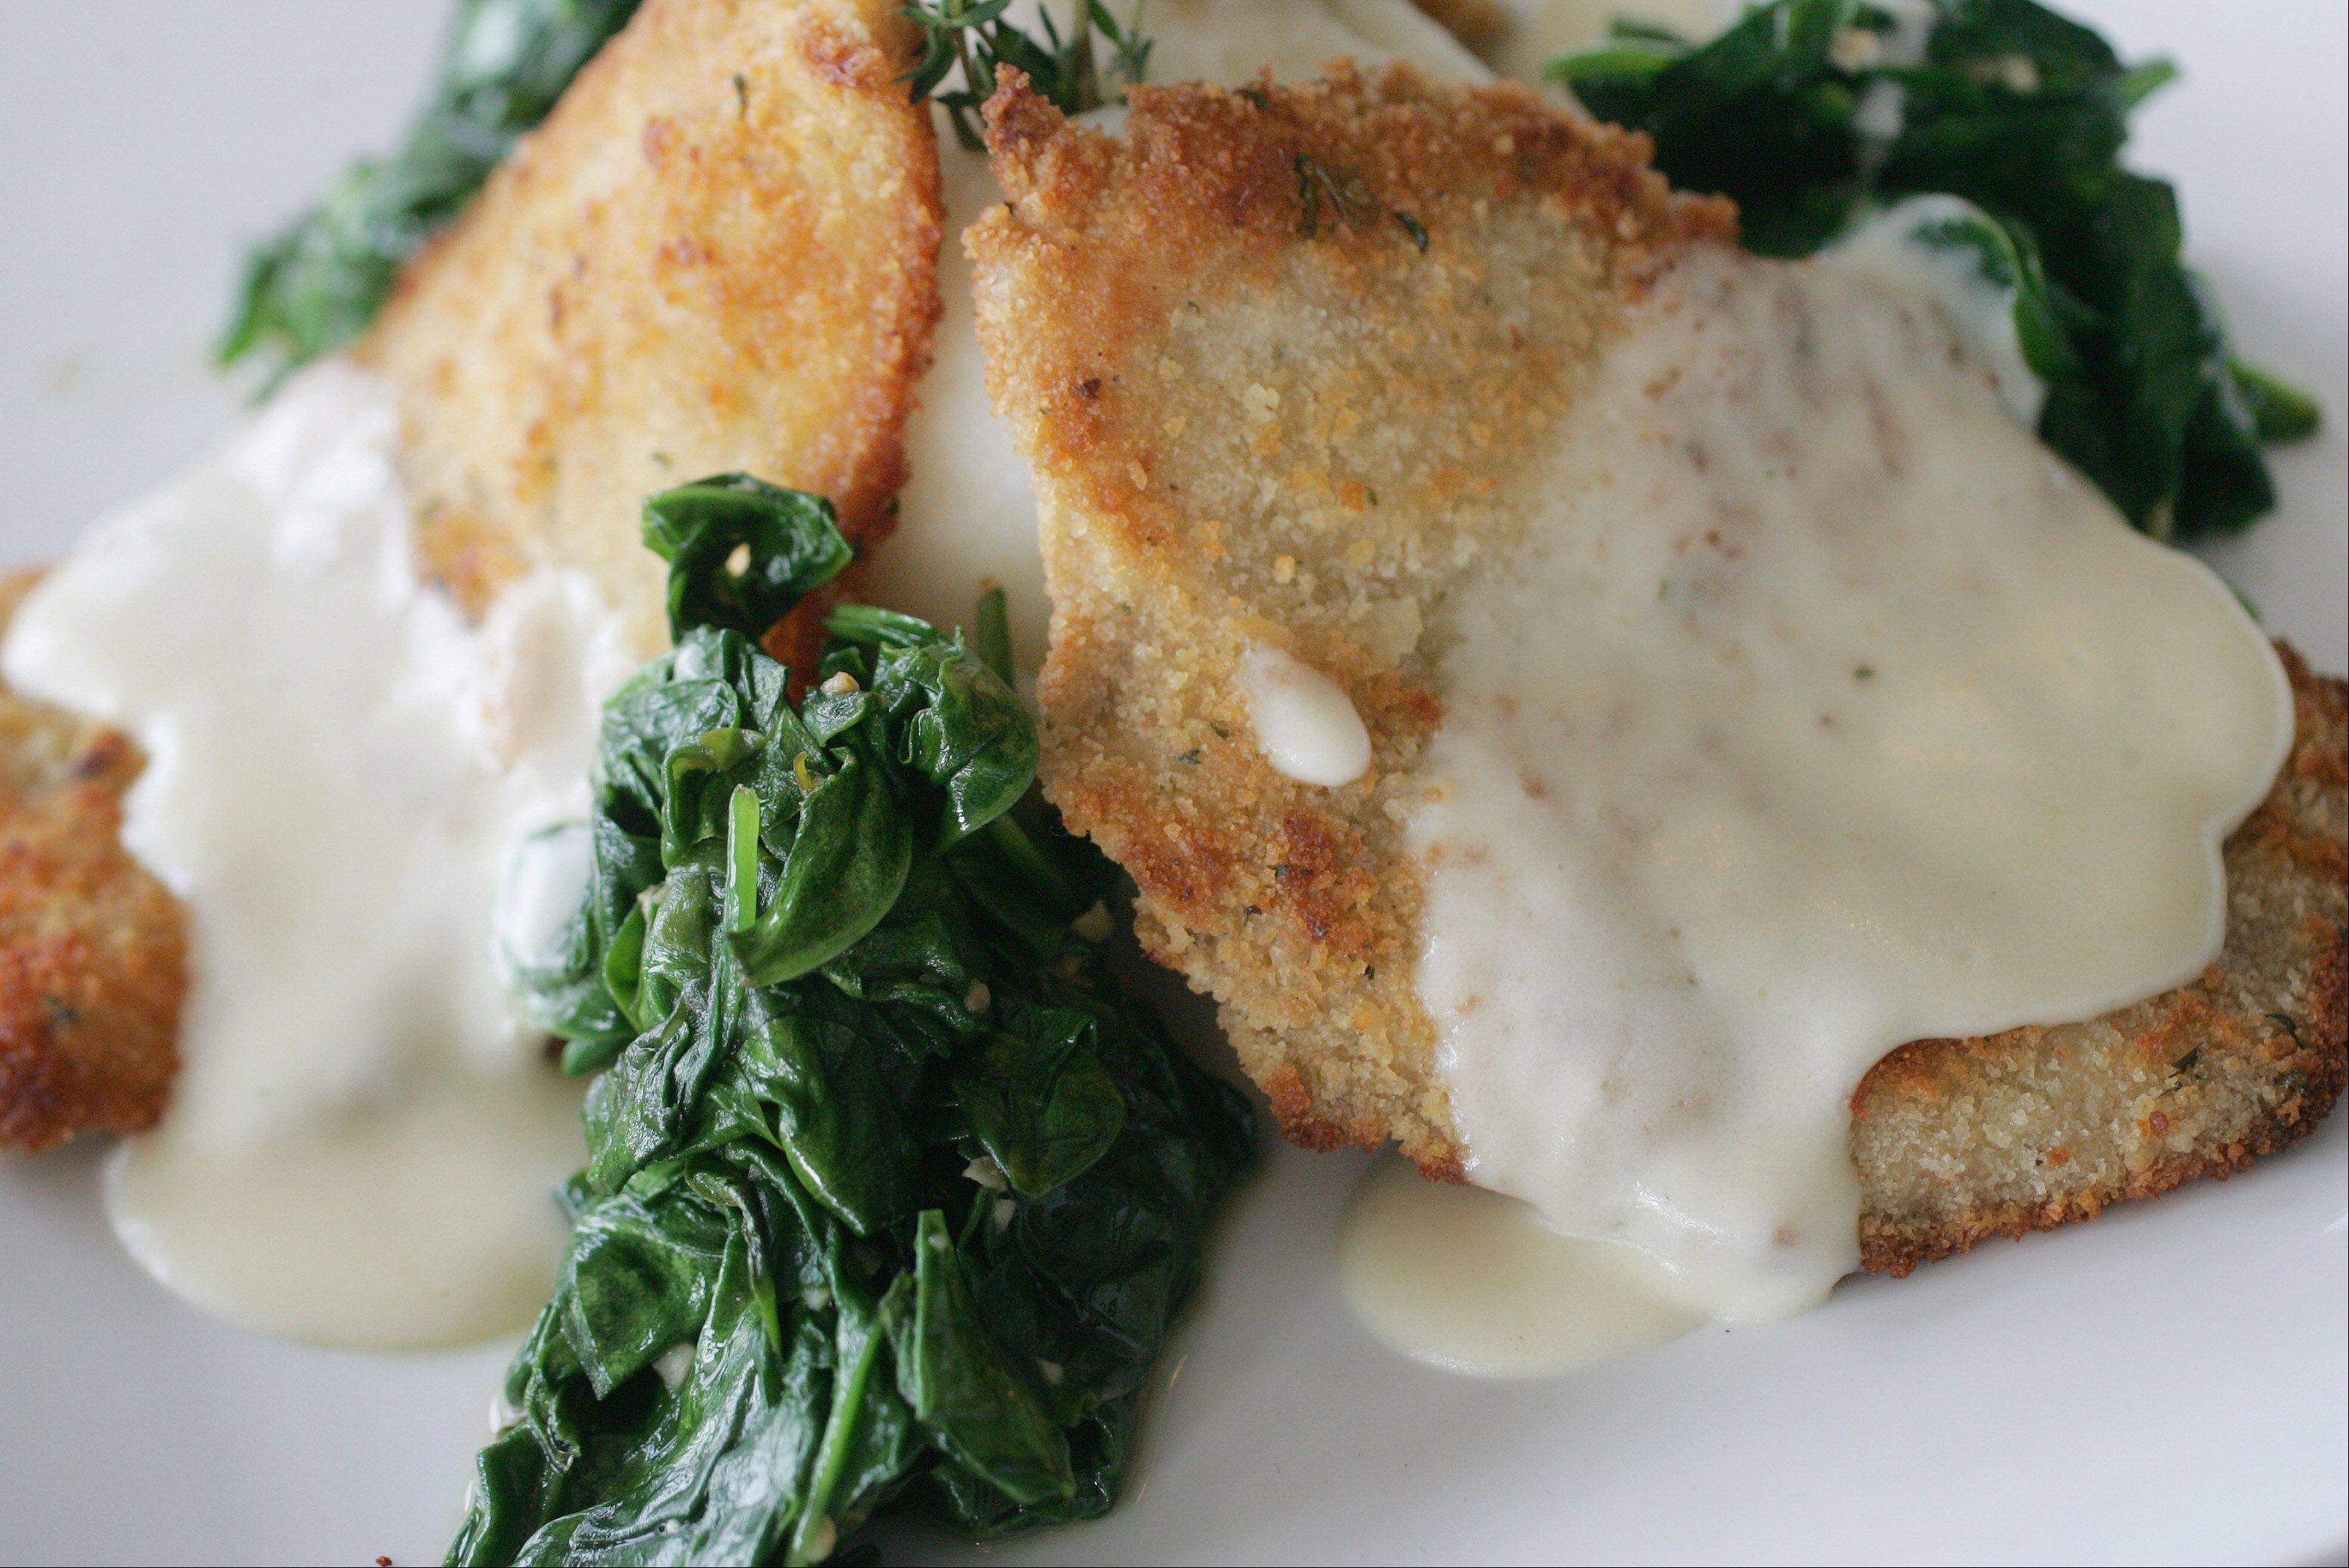 Jameson Chicken, served with mashed potatoes and spinach, comes topped with a whiskey cream sauce at Middleton's On Main in Wauconda.